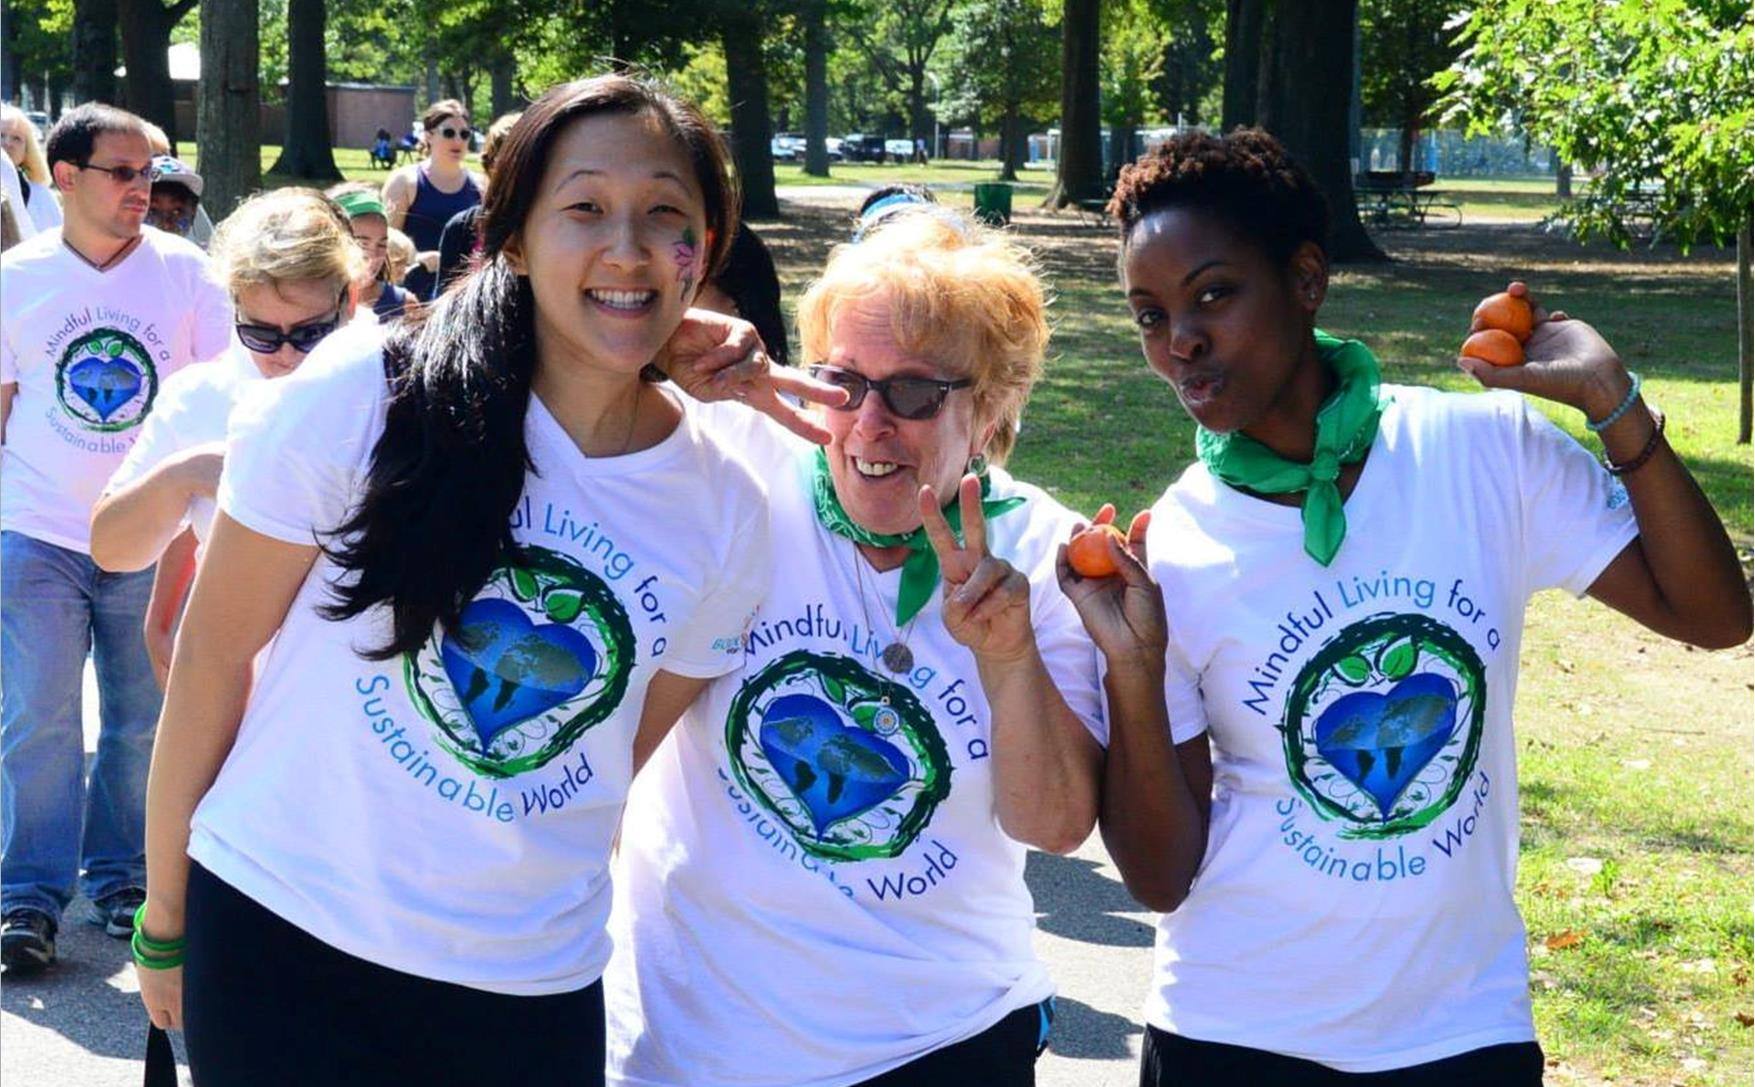 6th Annual New York Earth Citizens Walk Festival